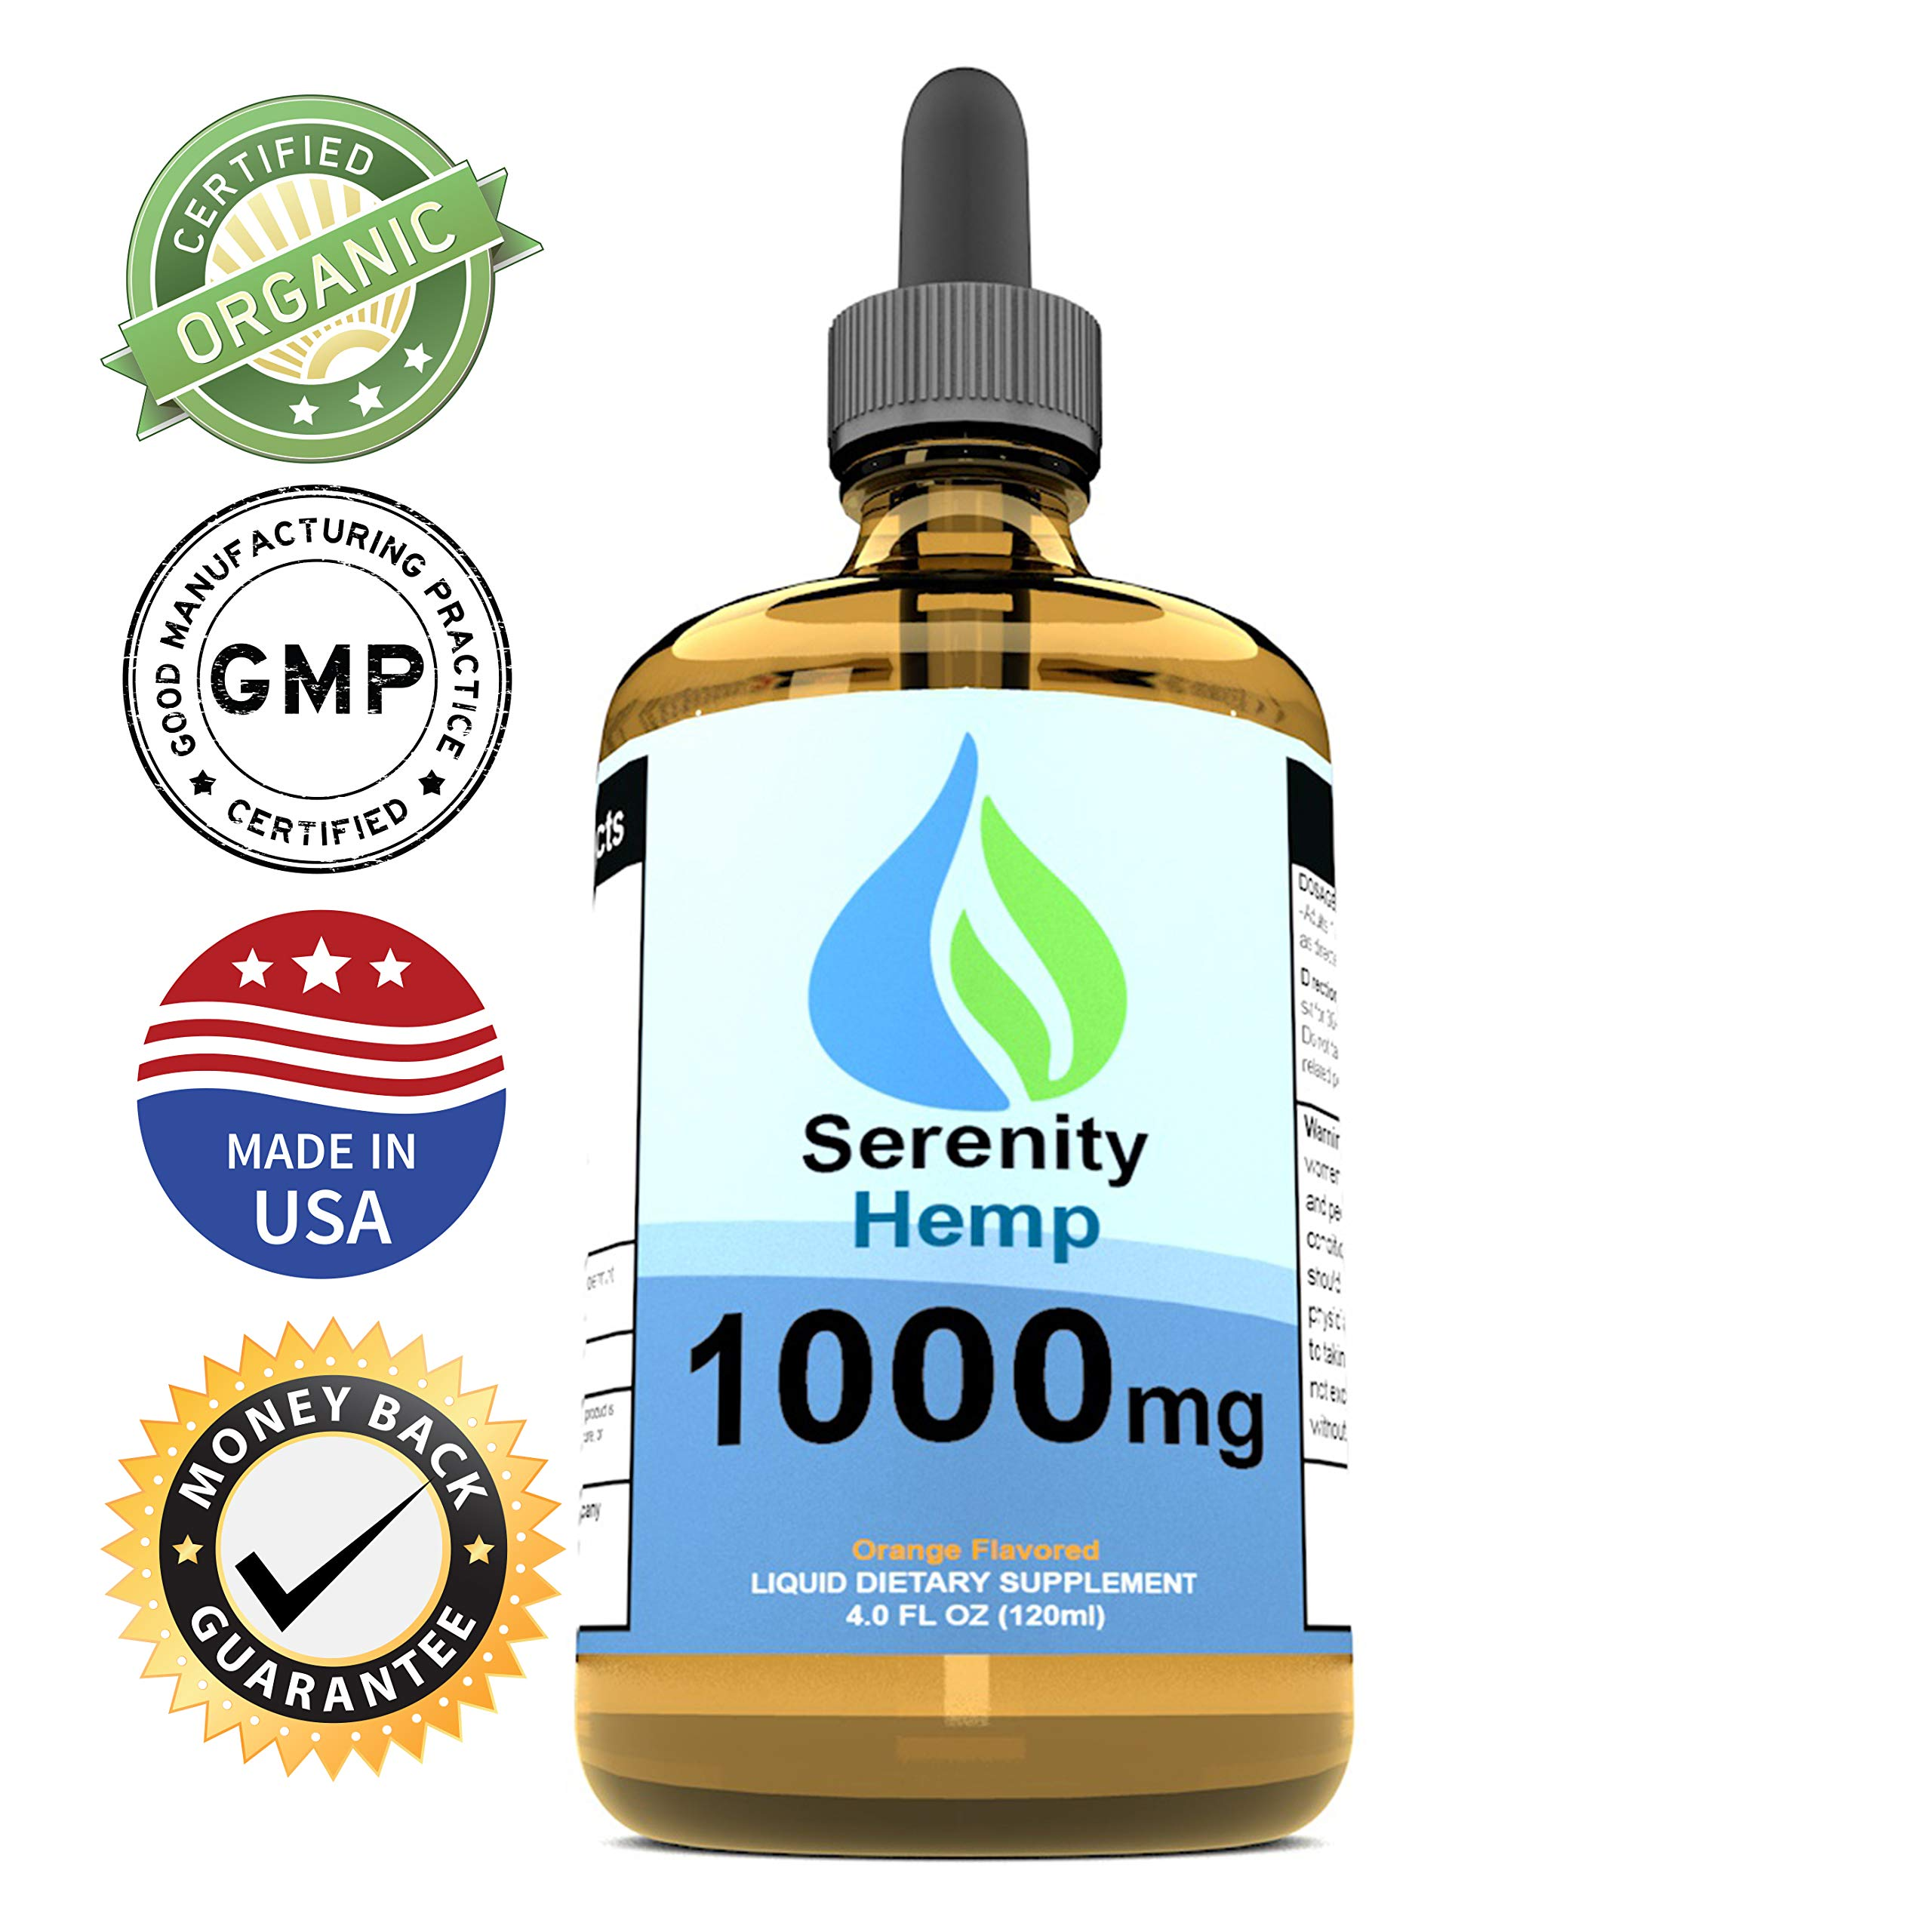 Serenity Hemp Oil - 4 fl oz 1000 mg (Orange) - Certified Organic - Relief for Stress, Inflammation, Pain, Sleep, Anxiety, Depression, Nausea - Rich in Vitamin E, Vitamin B, Omega 3,6,9 and More!